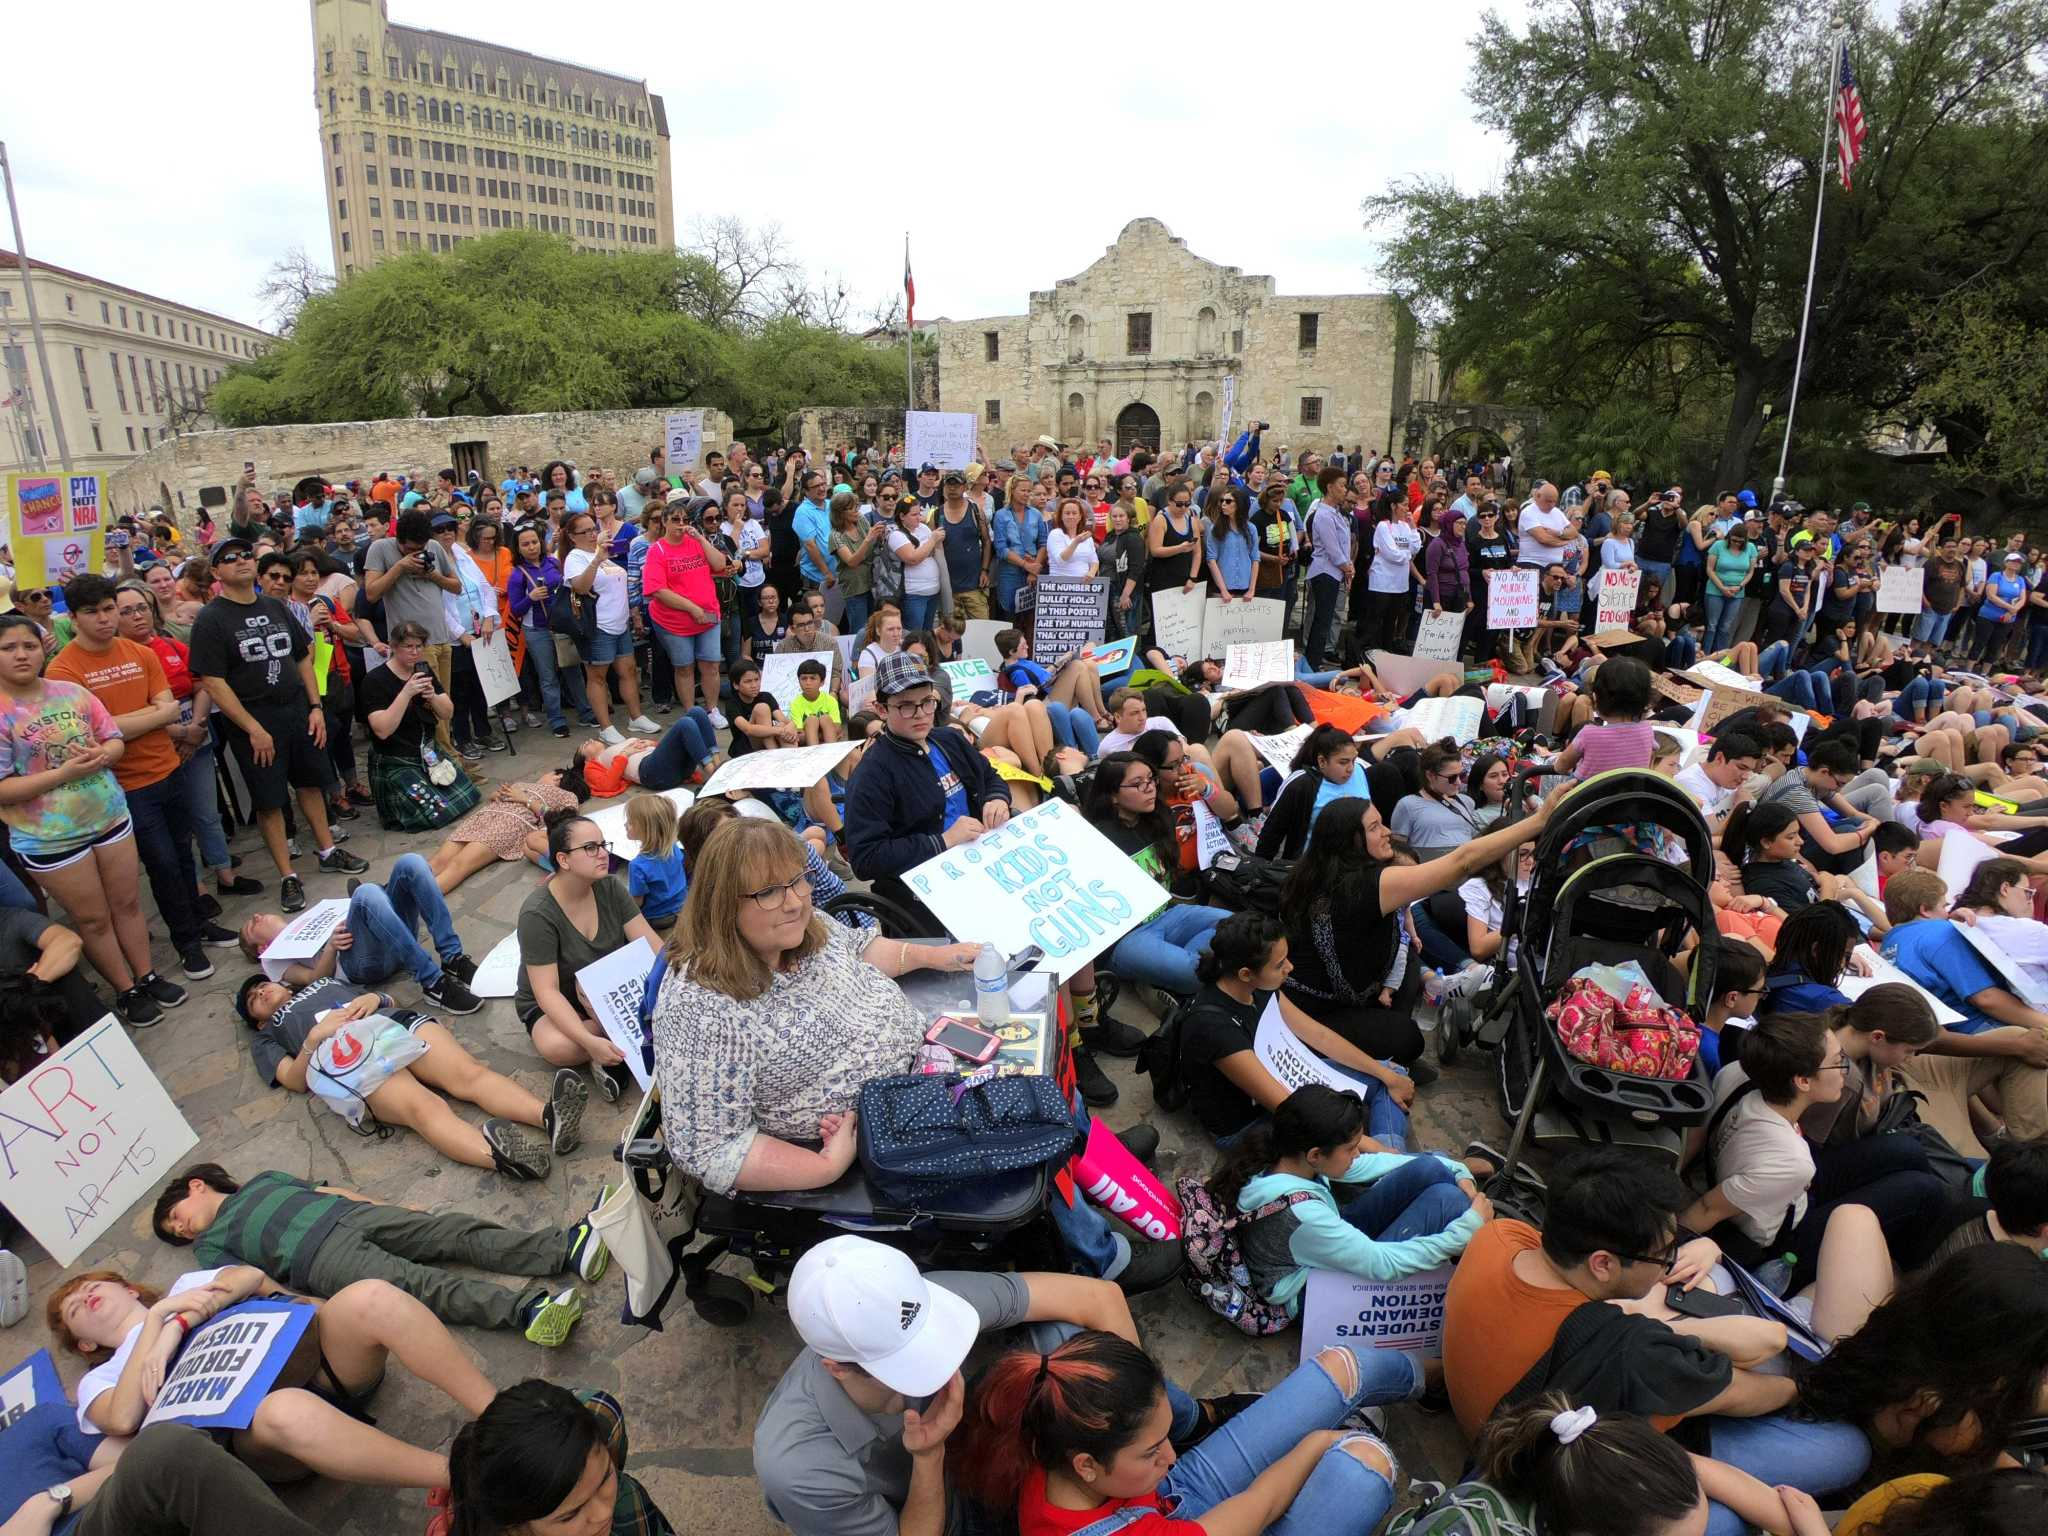 More than 1,000 turn out for gun reform march | My San Antonio